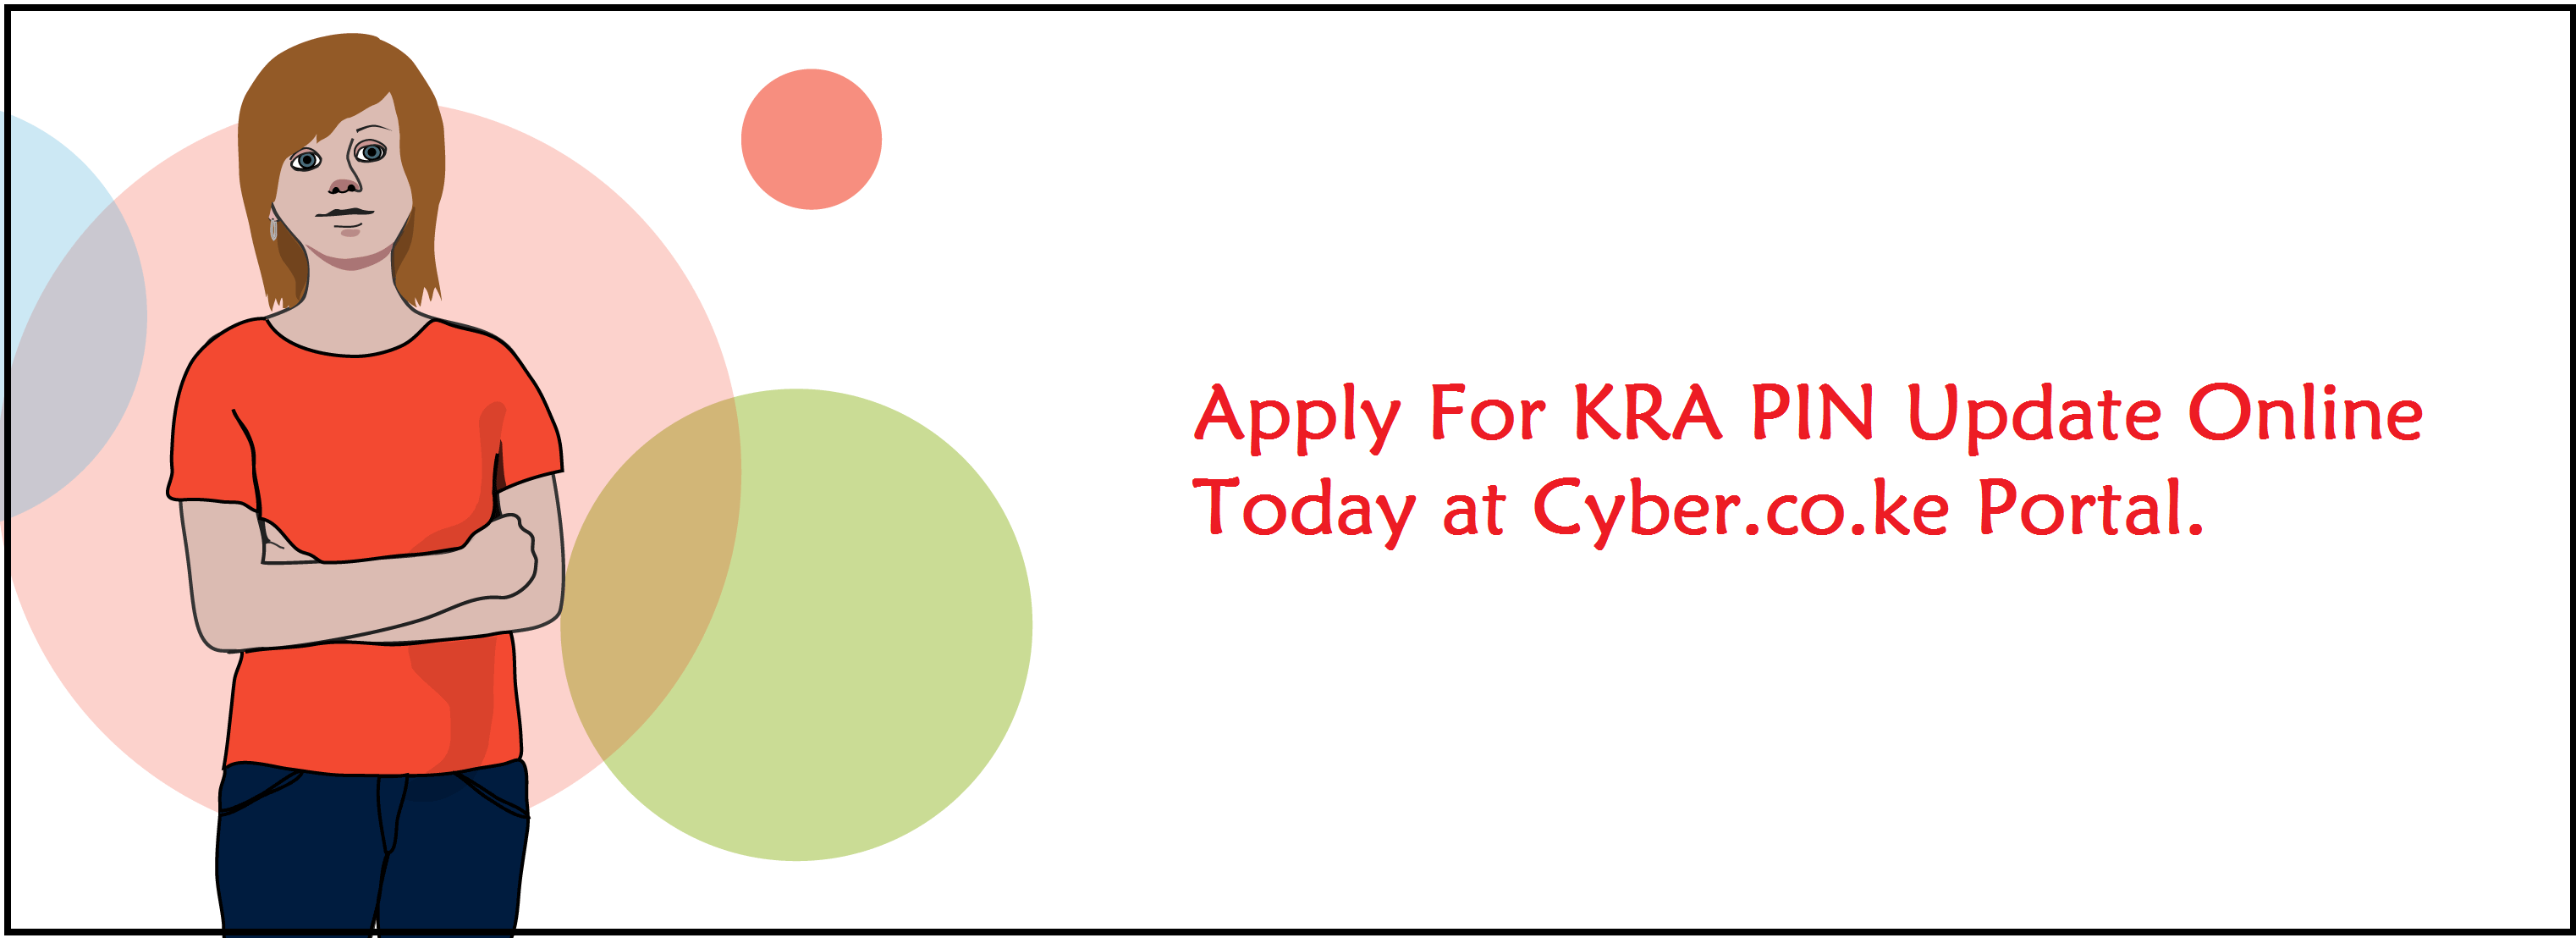 kra pin update services at cyber.co.ke portal